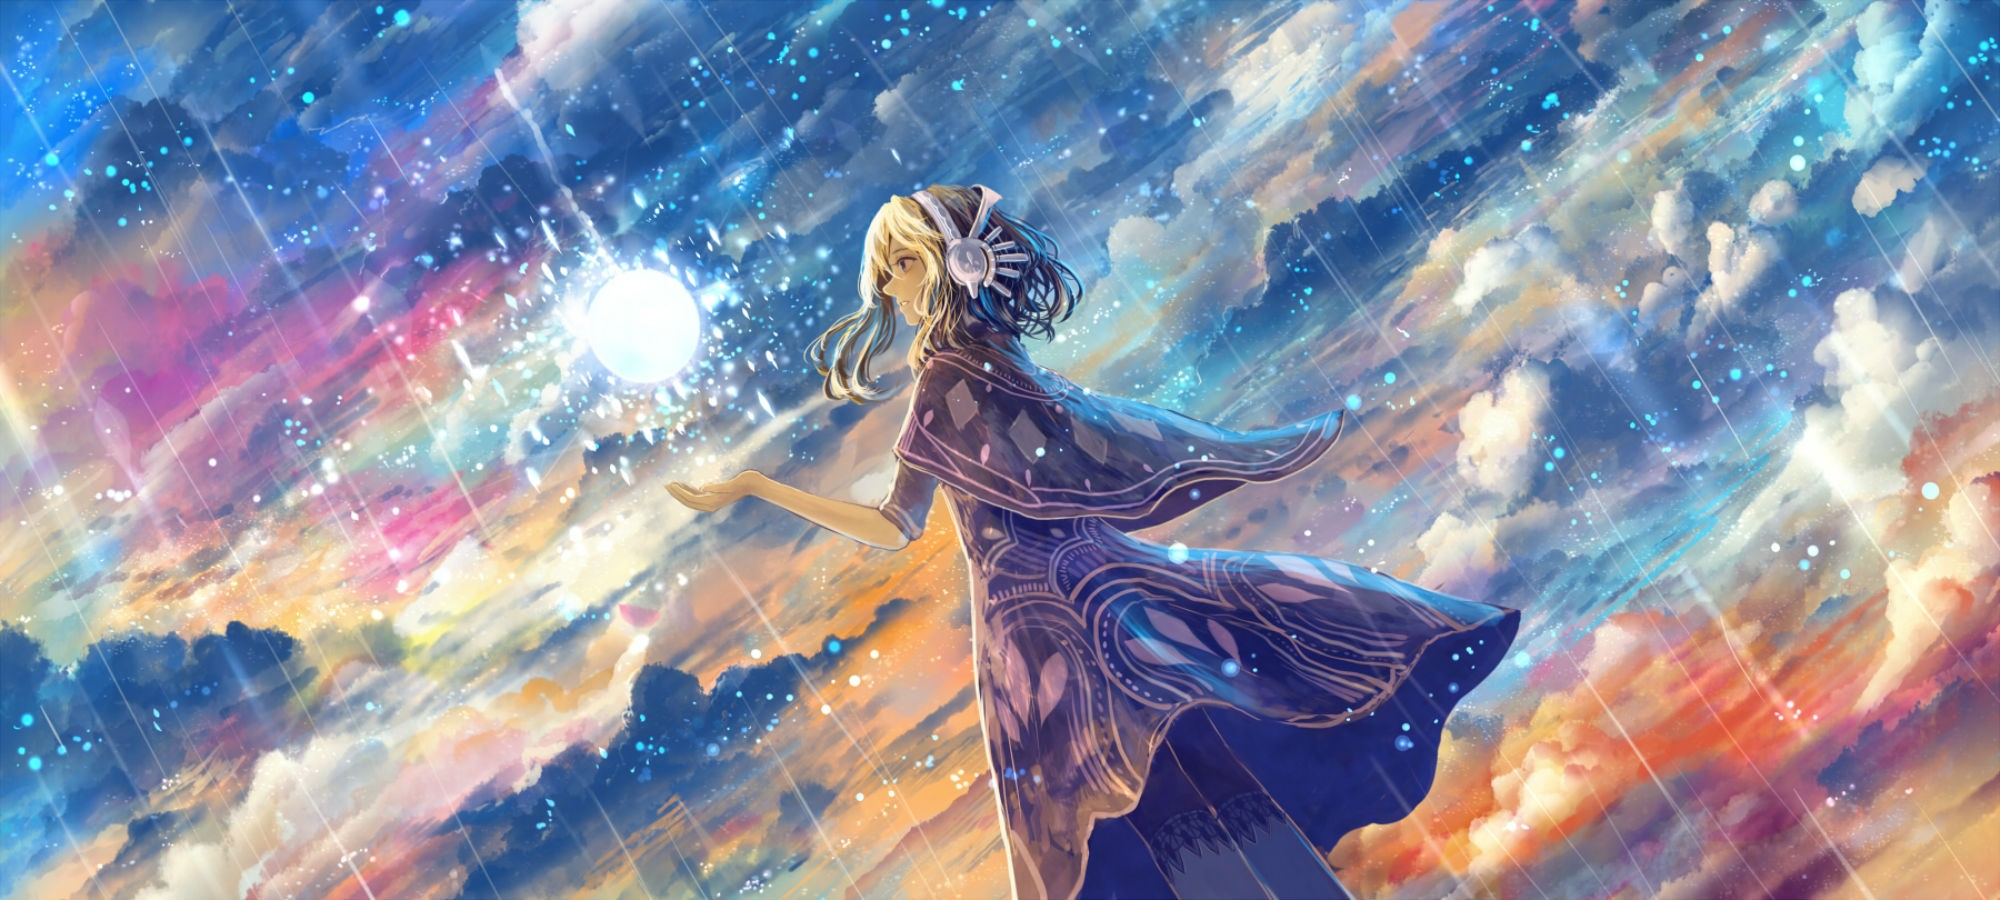 artwork, Fantasy Art, Anime, Magic, Stars, Clouds, Sky Wallpapers HD / Desktop and Mobile